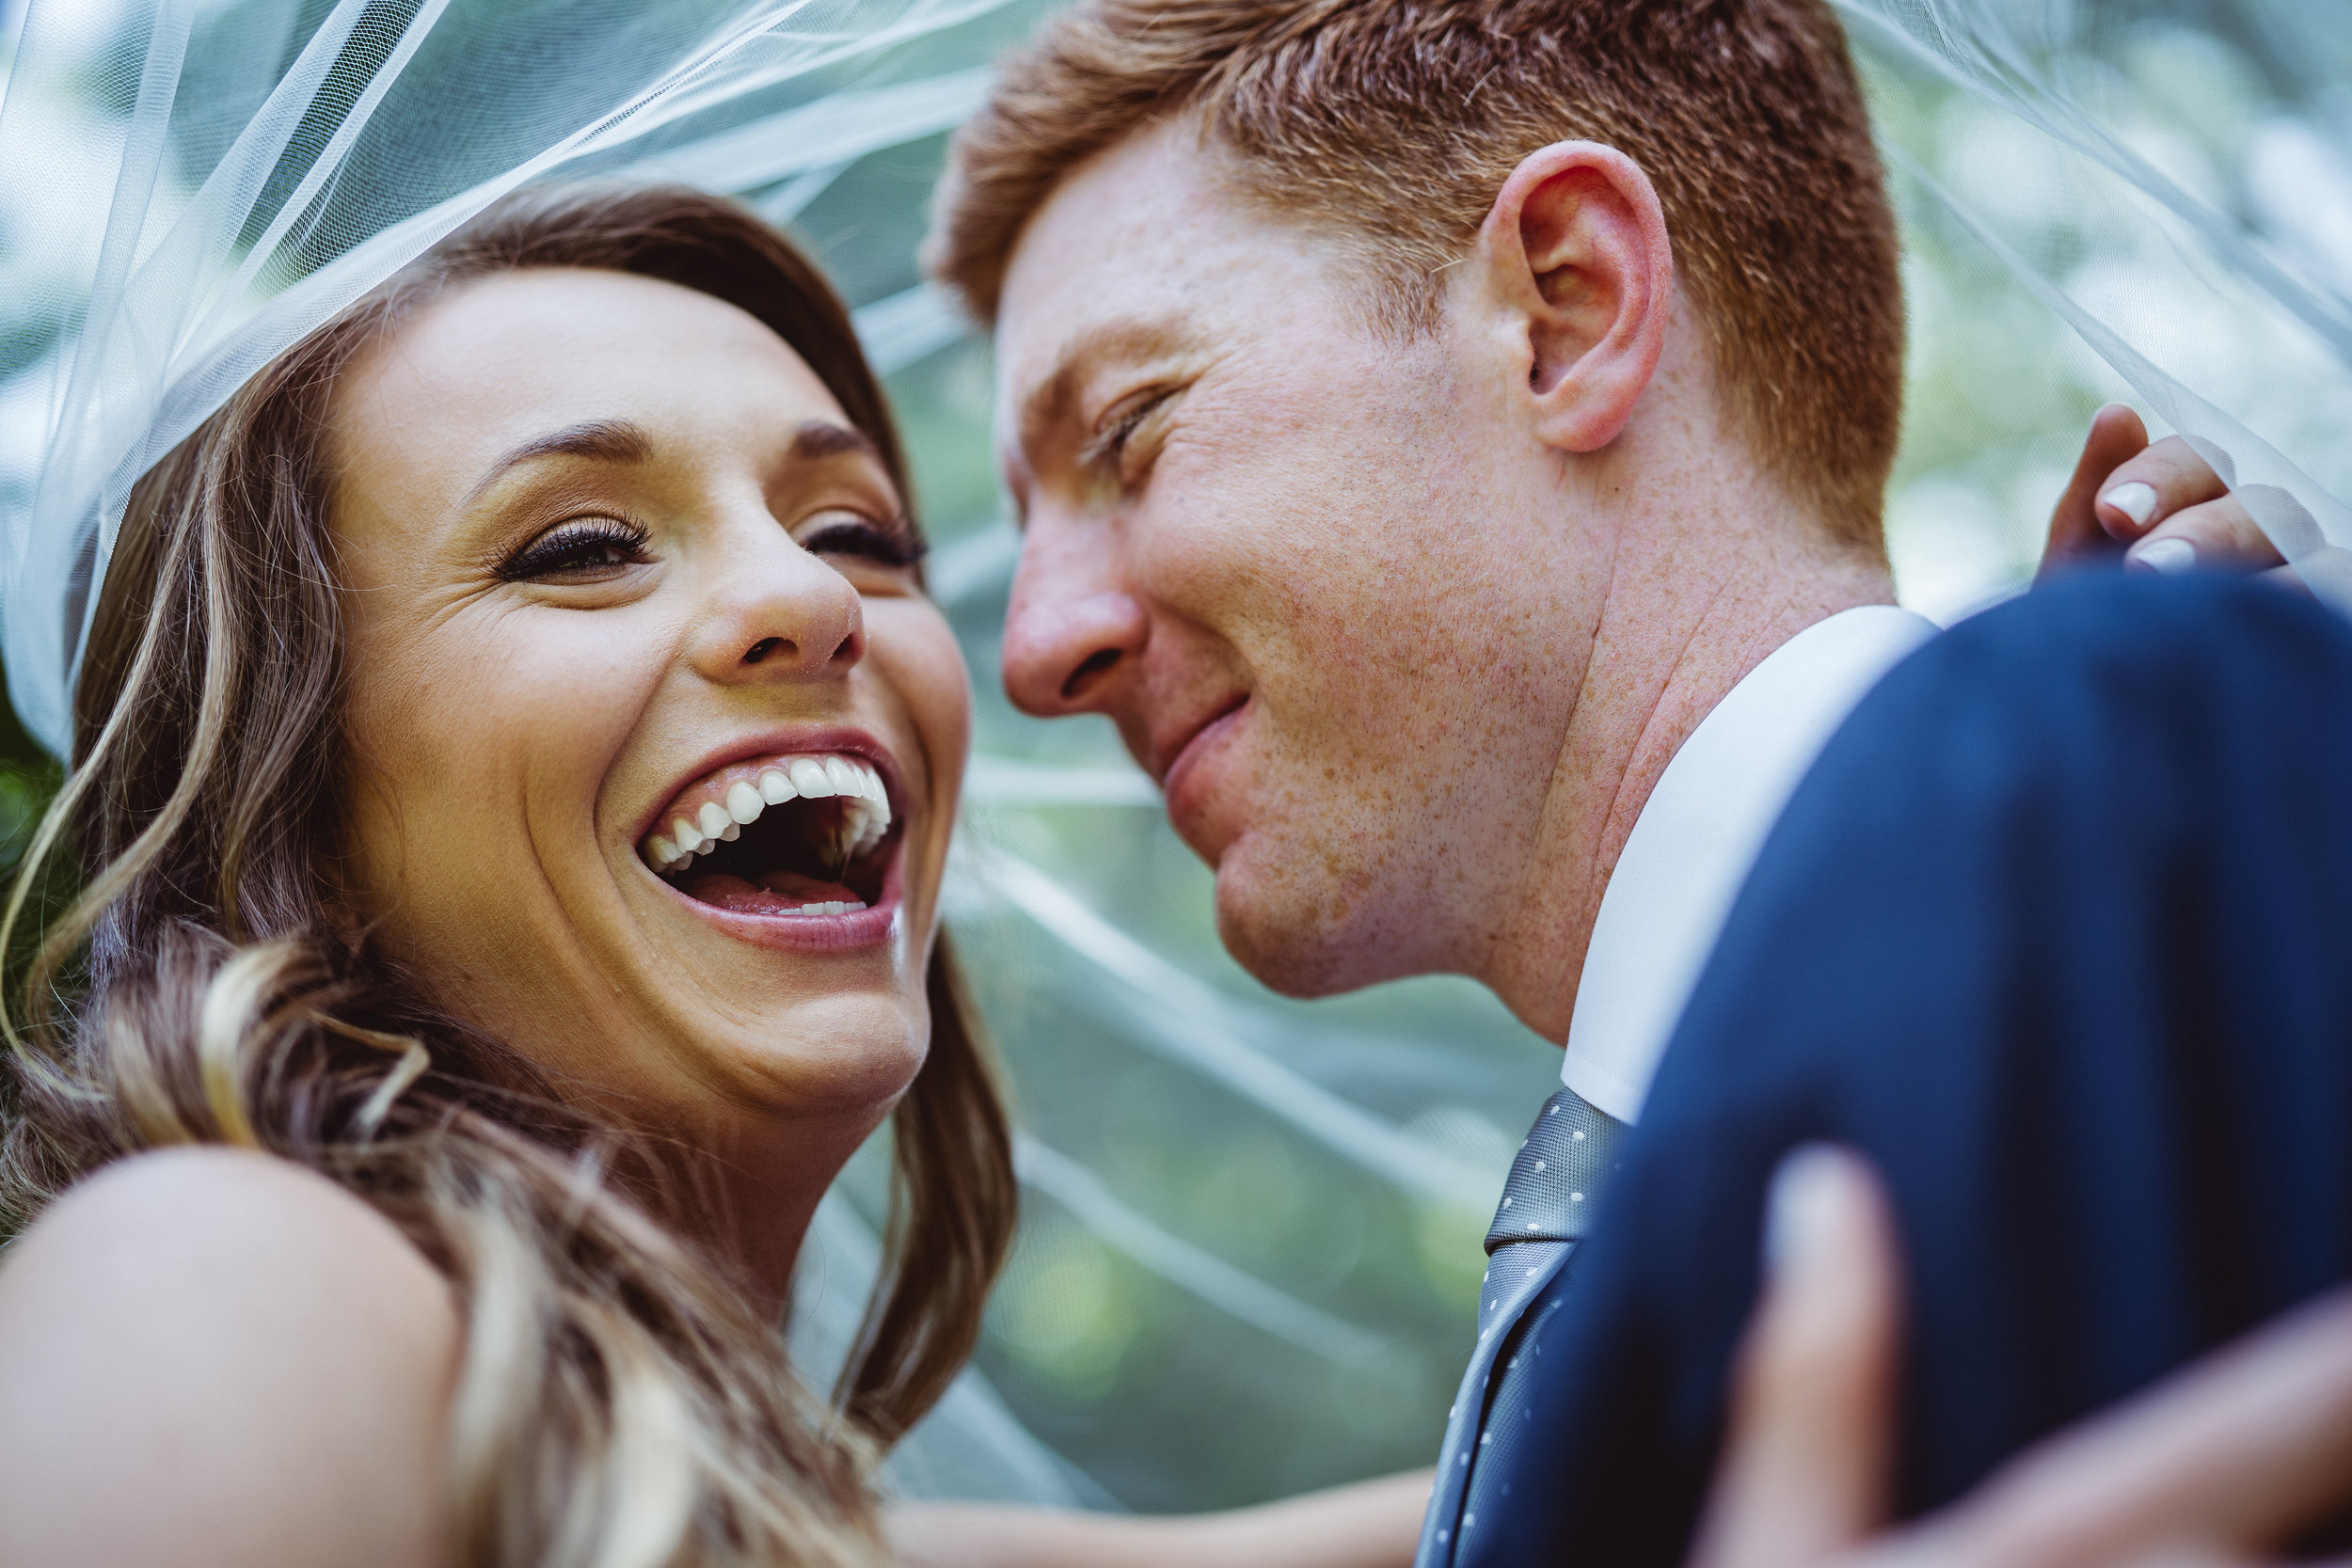 Getting to host Anna and Bailey's perfect day was a dream for us! This couple radiated joy from the minute they walked in until the minute they walked out. One of our favorite things was the way that they incorporated so much of their personalities into their wedding day. Bailey is a Tennessee boy who loves running, and Anna never stops smiling or loving the people around her. Those things are so evident in their pictures, and we're excited to share them with you!  Anna's bridesmaids wore beautiful blue heather dresses, and the guys' navy tuxedos complimented them perfectly. They had a gorgeous cake with hints of blush and greenery, and of course Bailey's groom's cake pointed to his love for running, biking, swimming--anything active!   Amber Ridge Photography captured their day beautifully, and we know that you will love these pictures as much as we do!